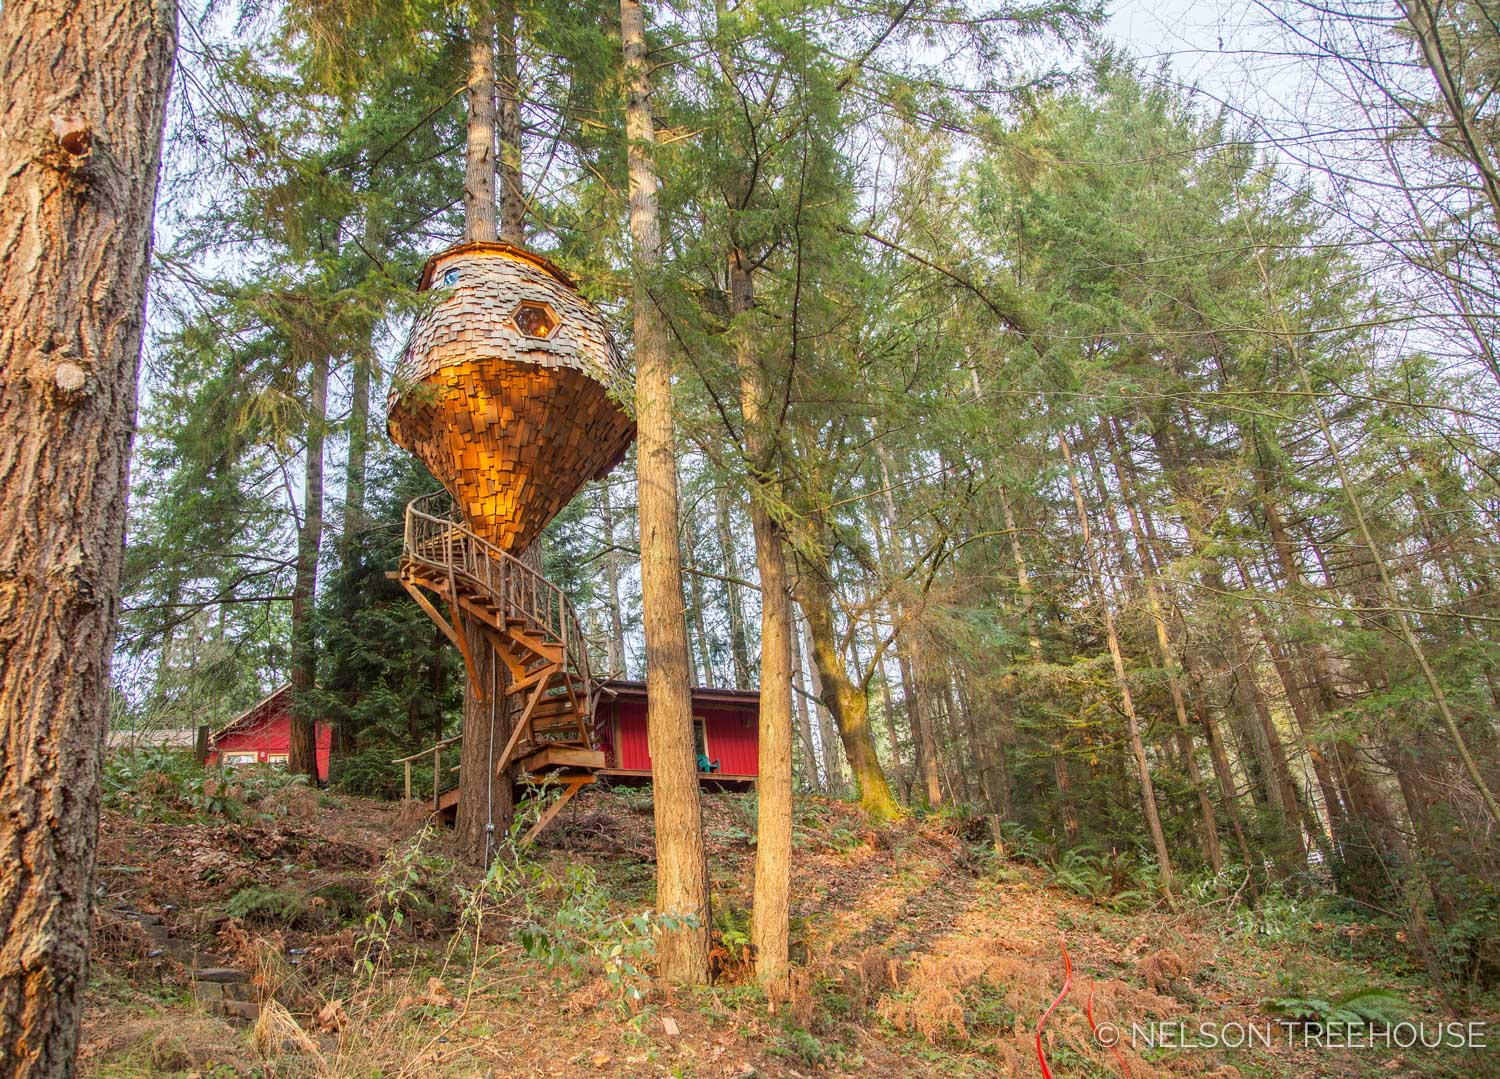 Base view of the Beehive Treehouse